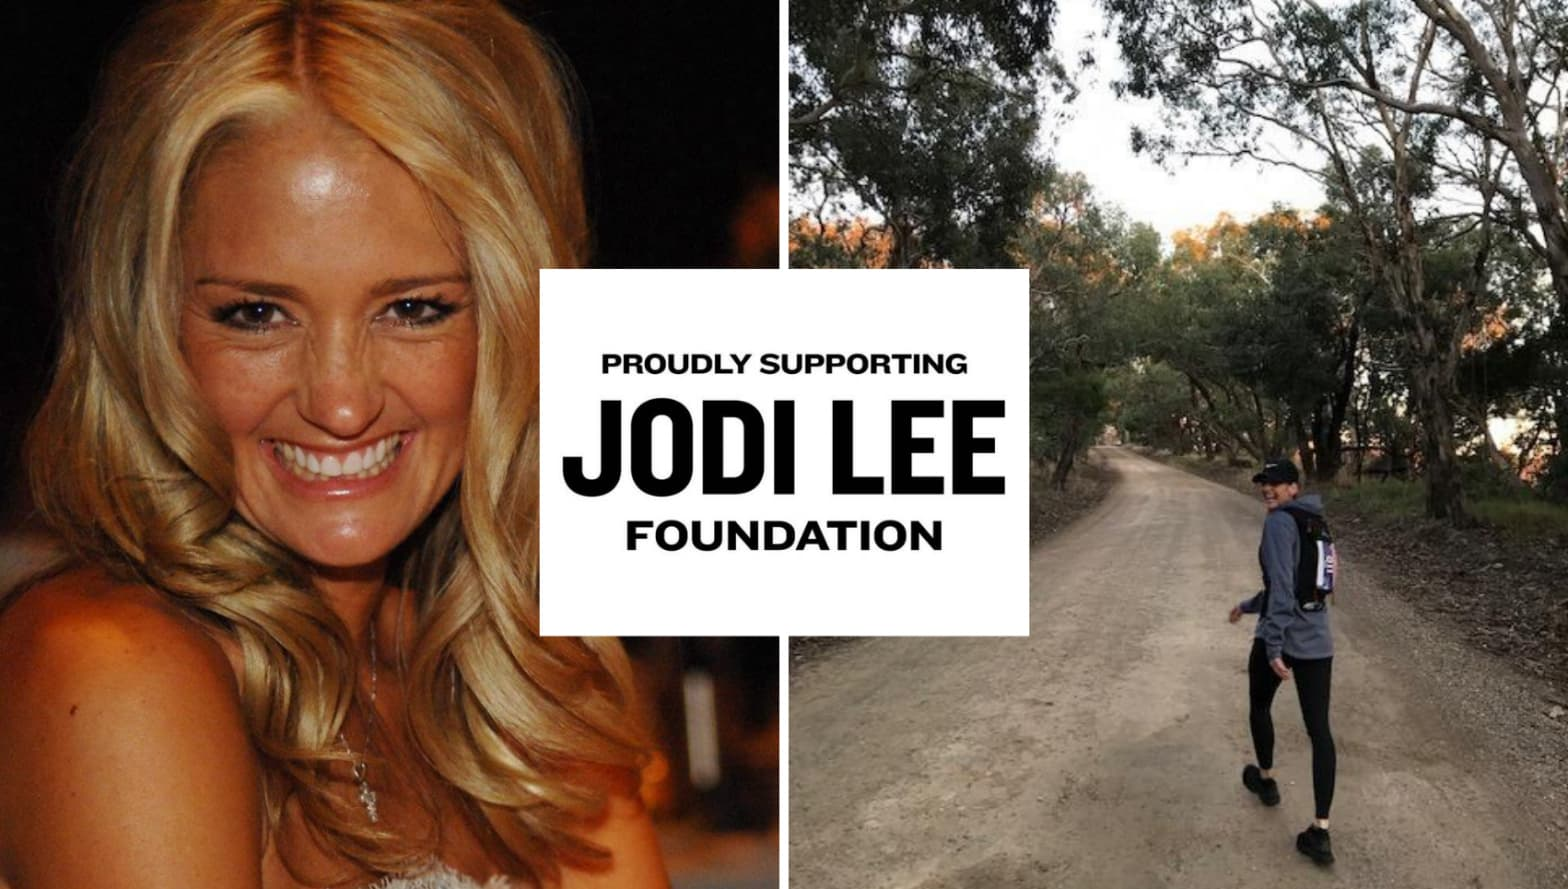 FPE has been supporting the Jodi Lee Foundation for 6 years in memory of Tracey Carey